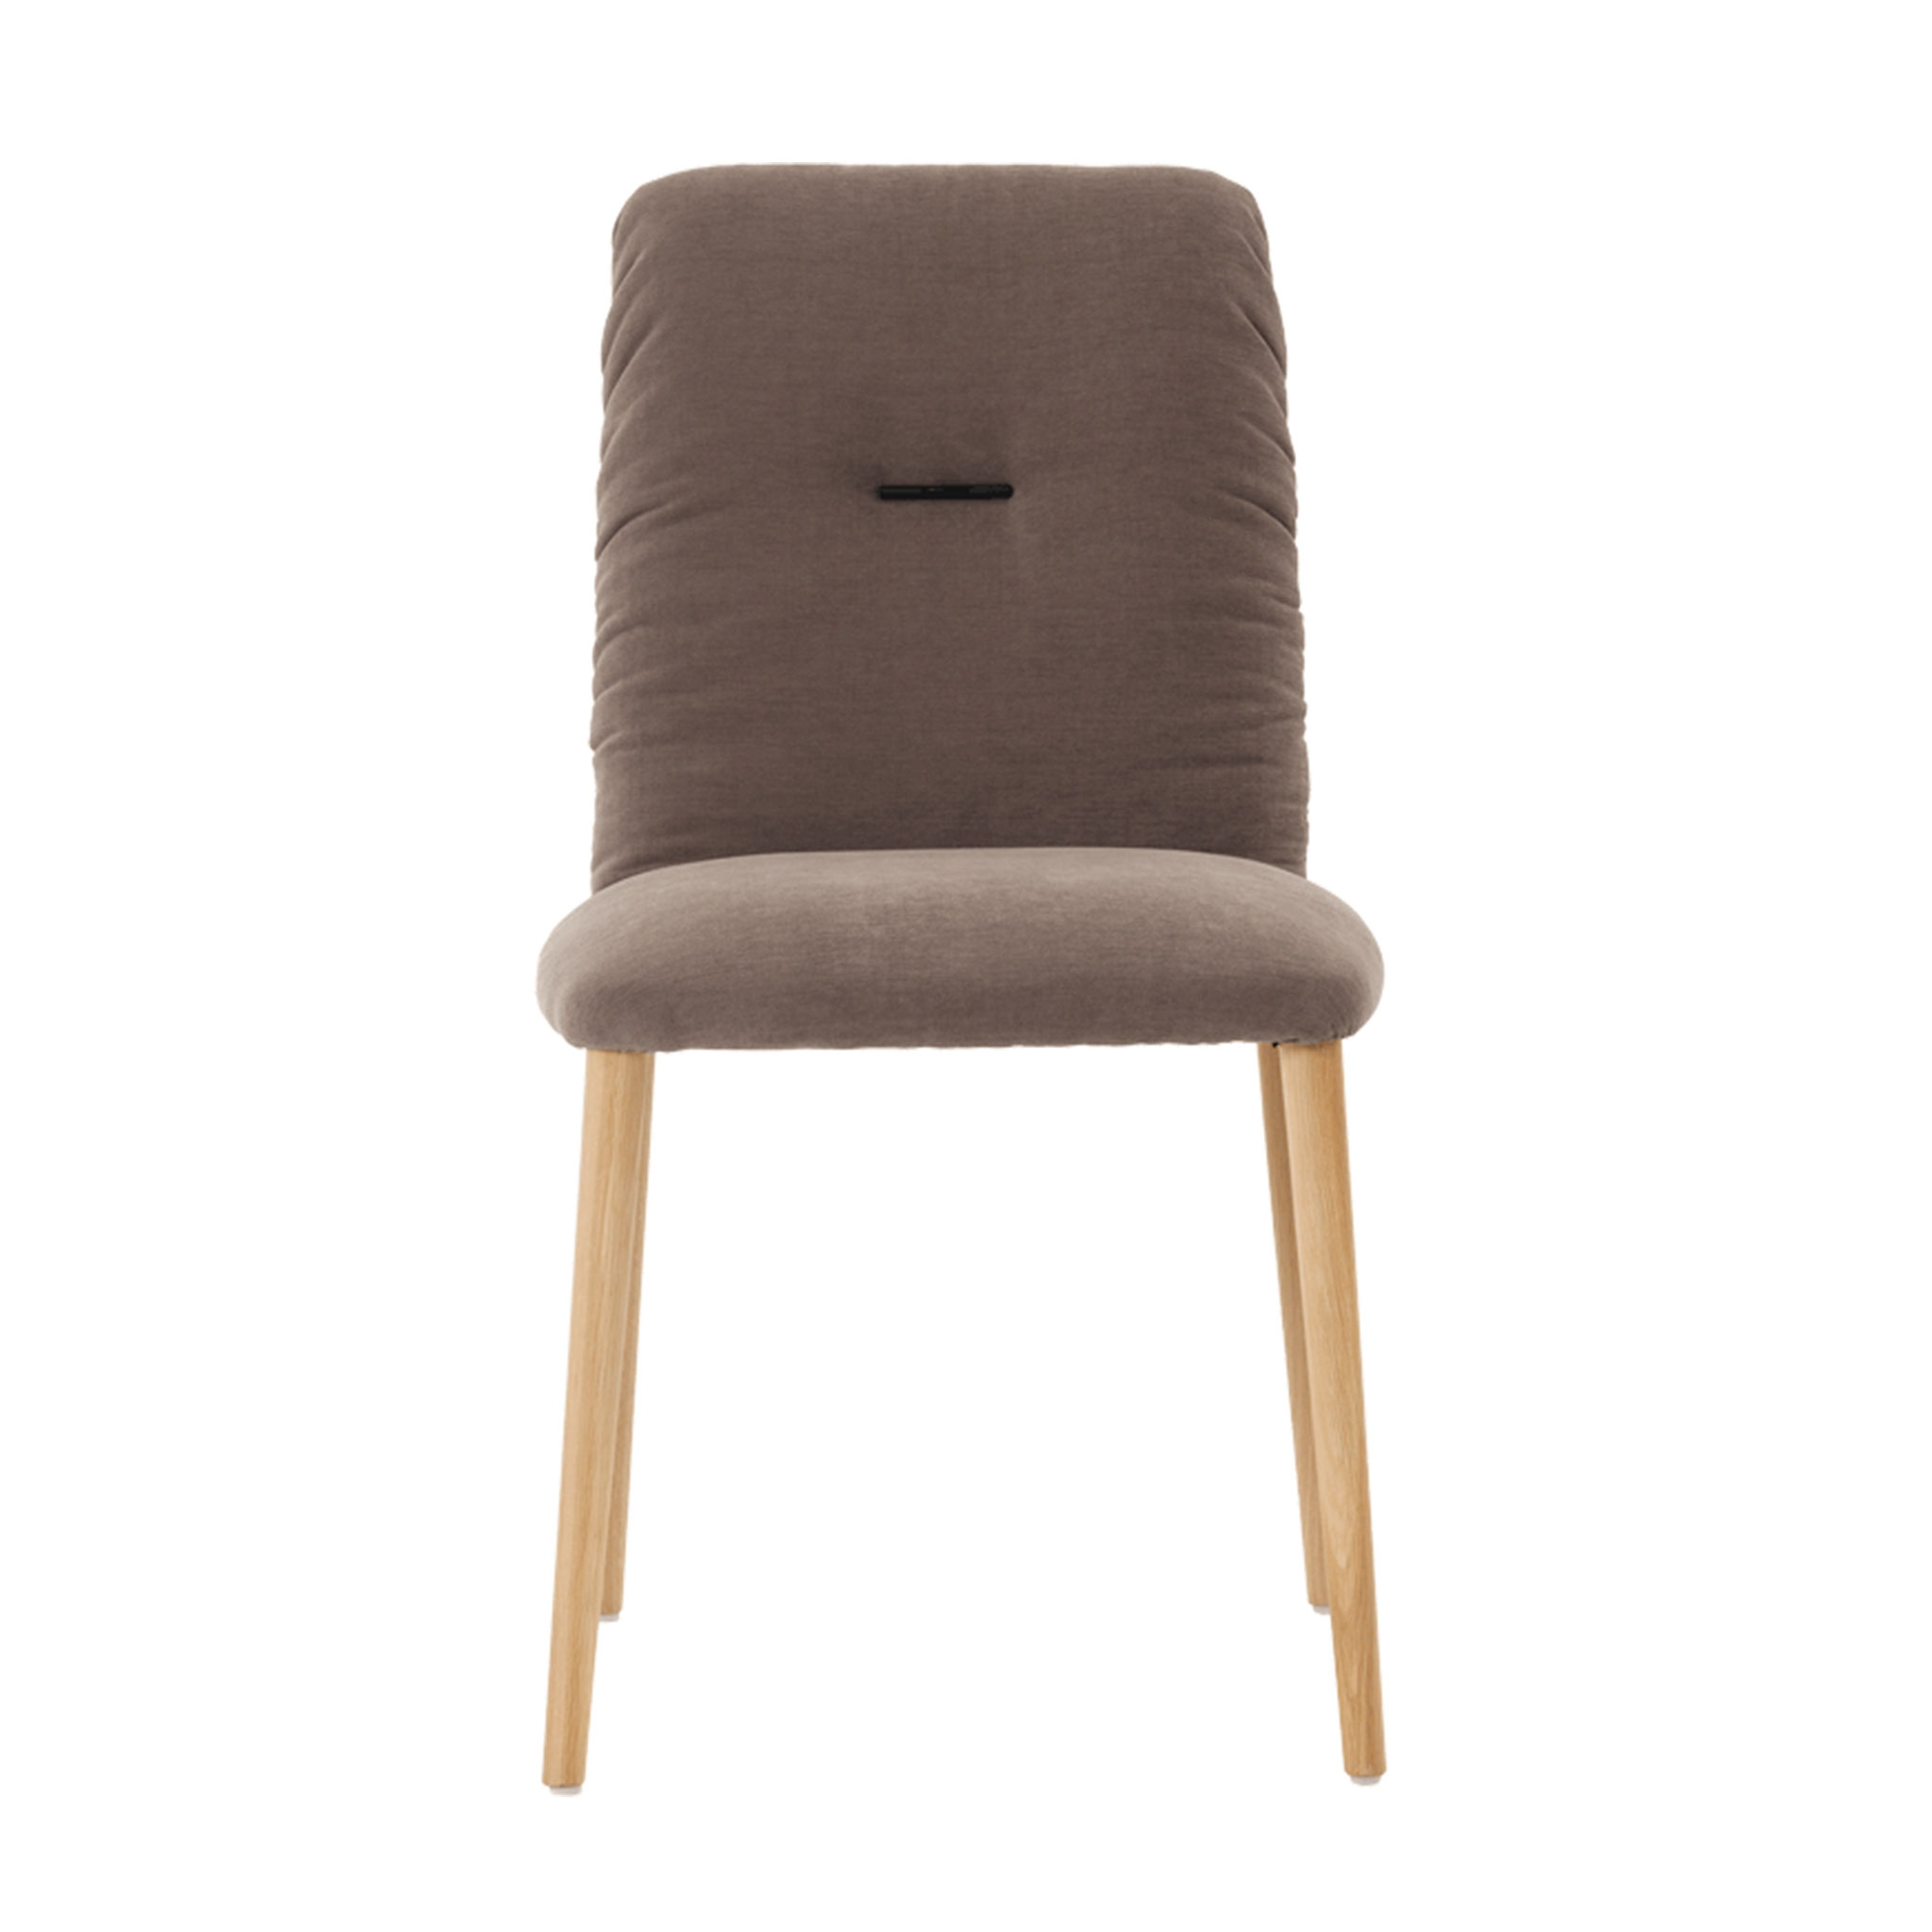 Ora chair - wood legs